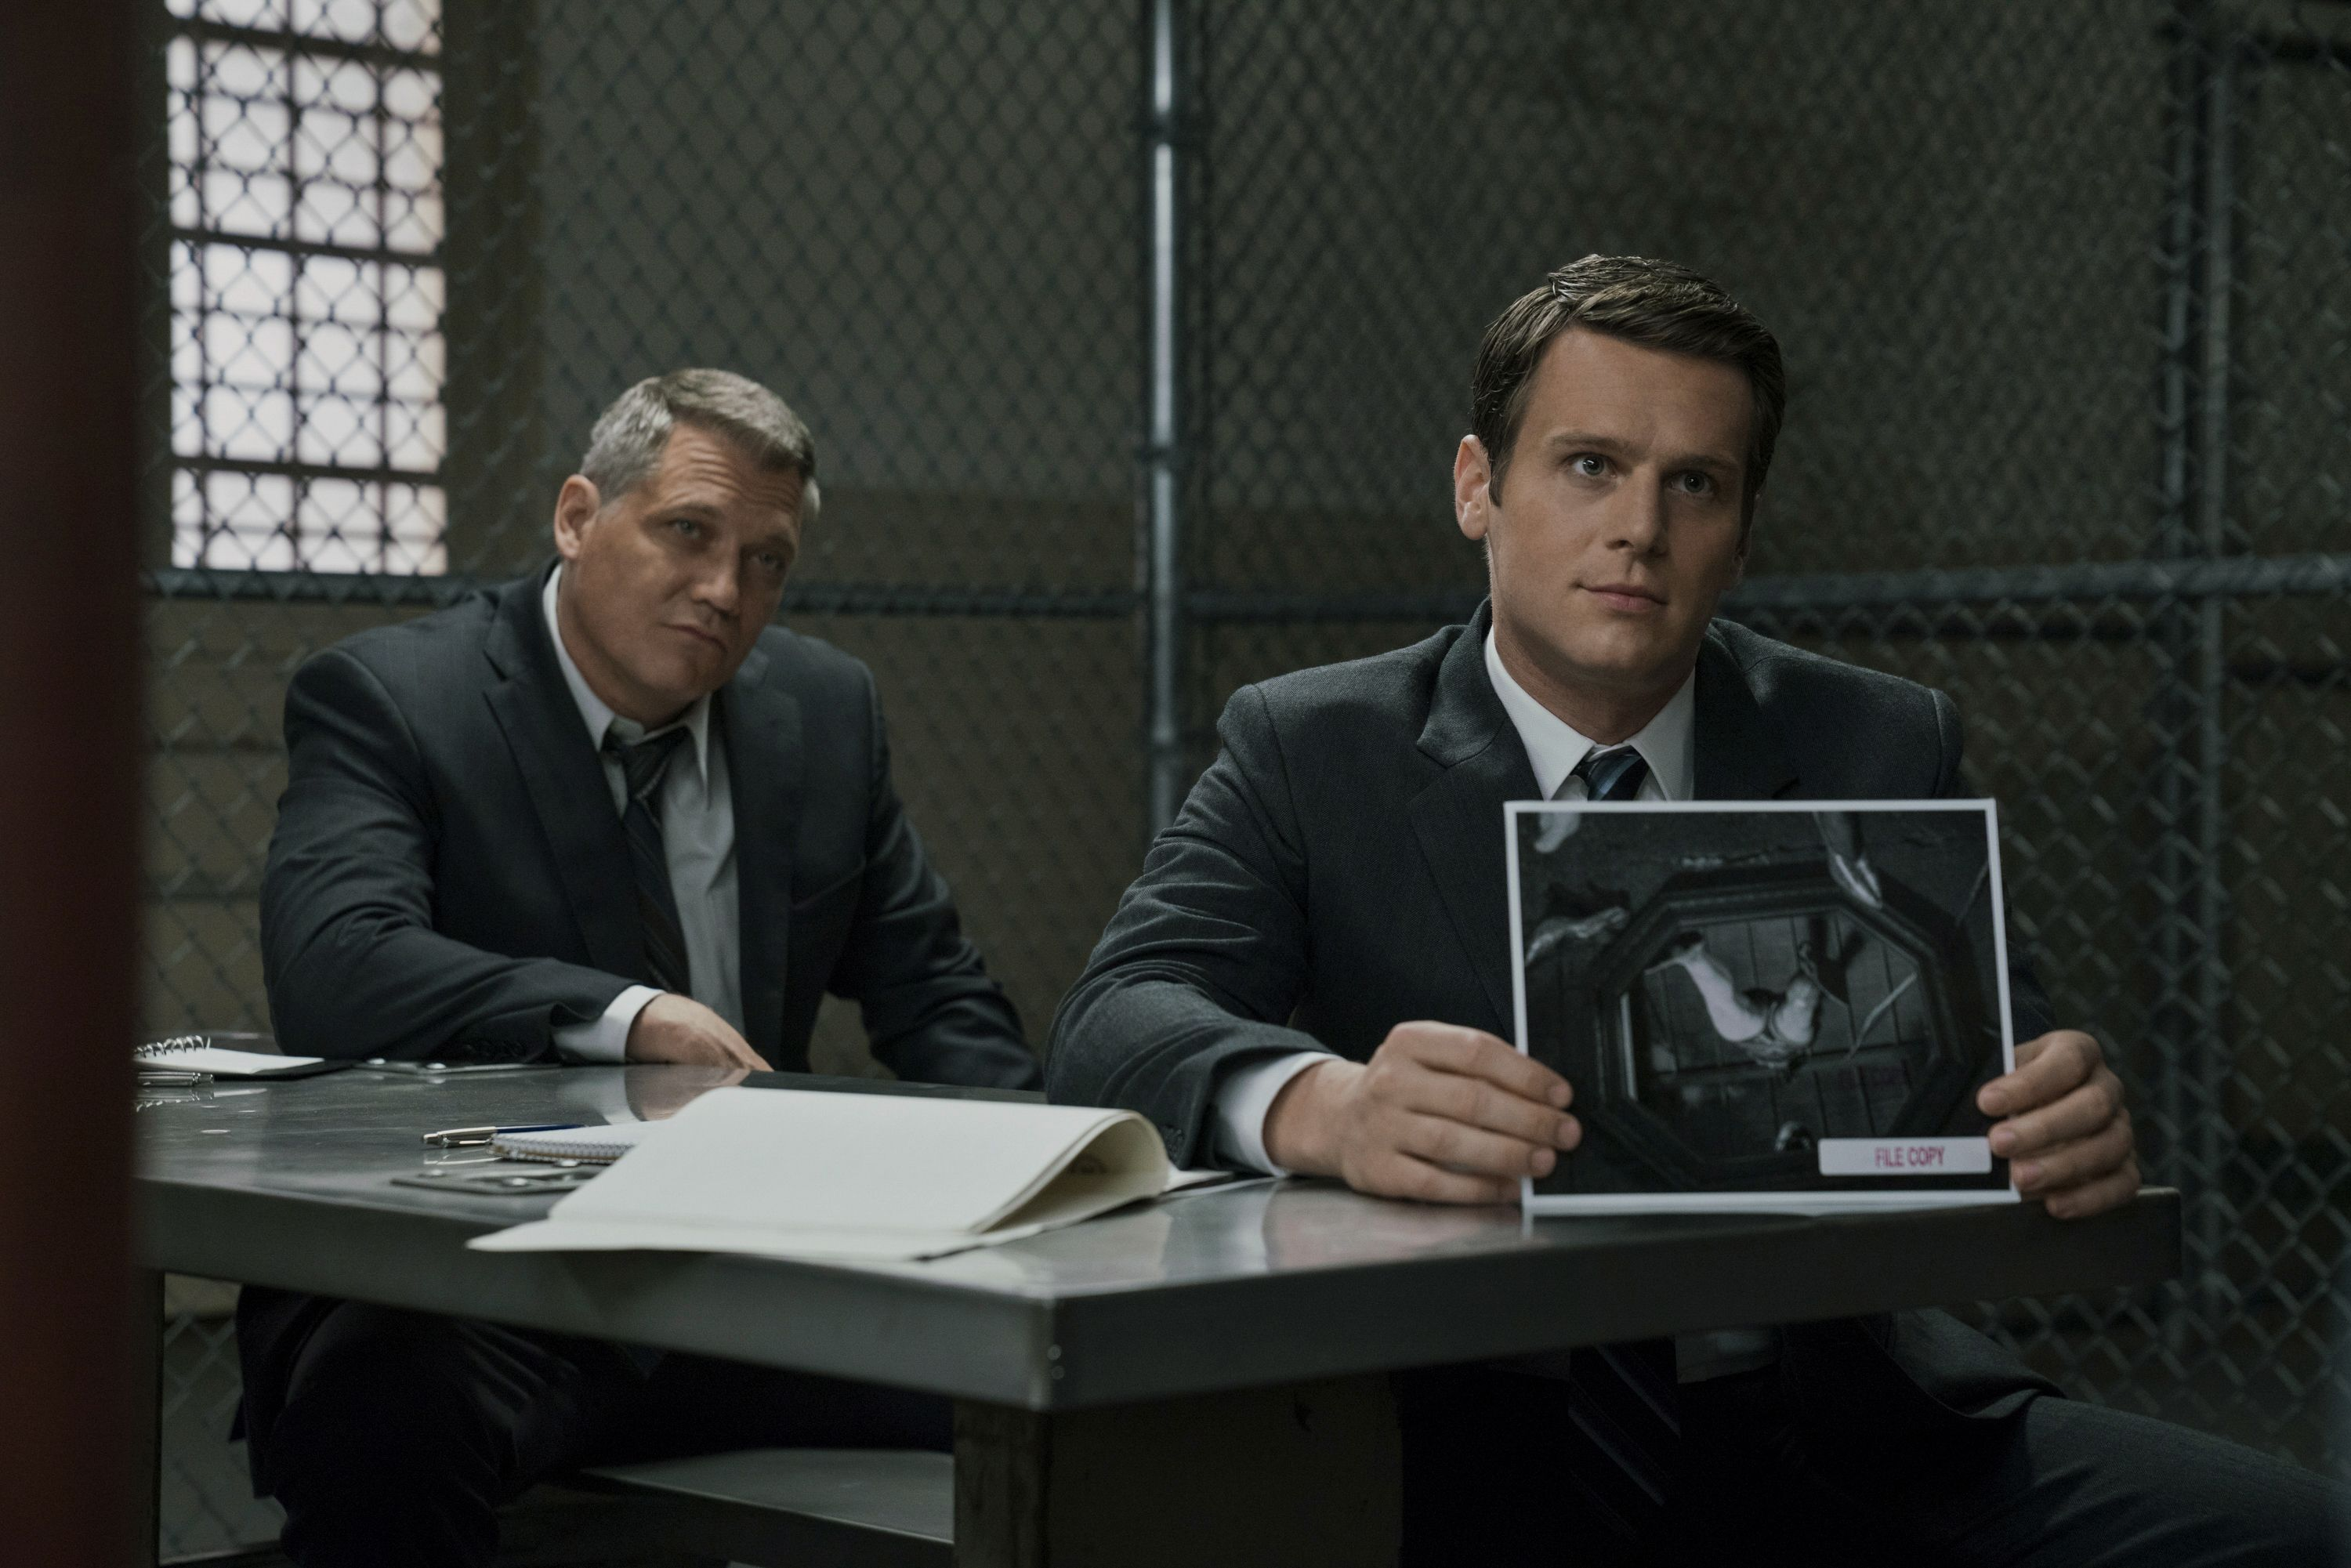 Mindhunter season 2 on Netflix – release date, cast, plot